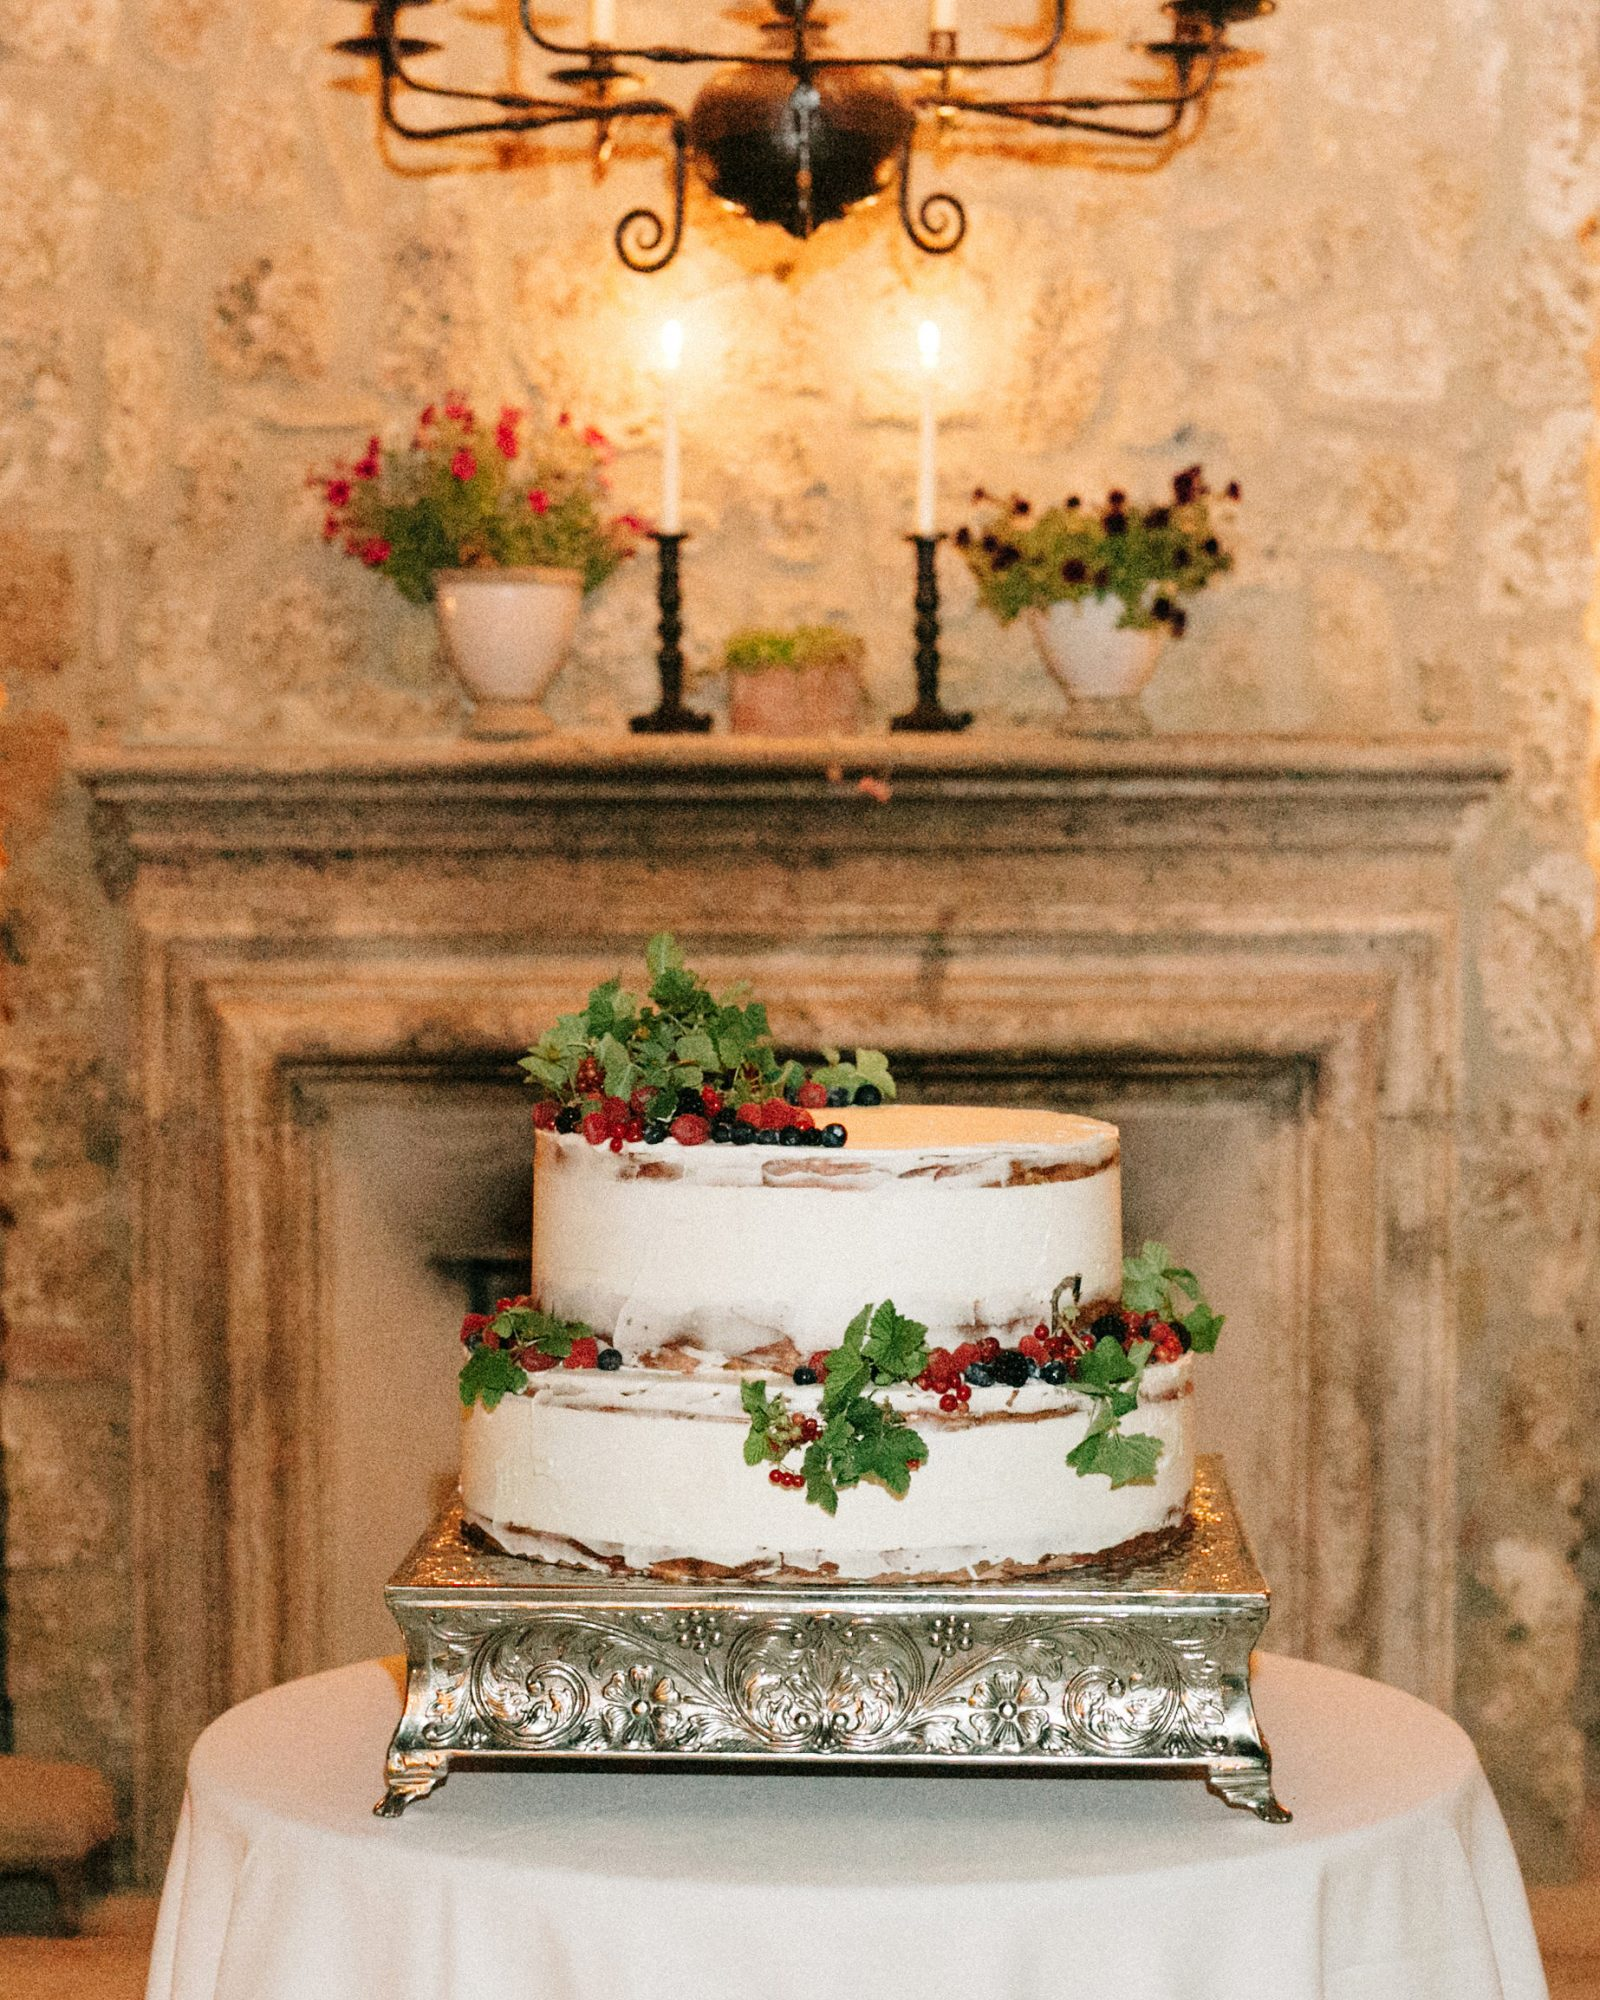 alexis zach wedding italy cake